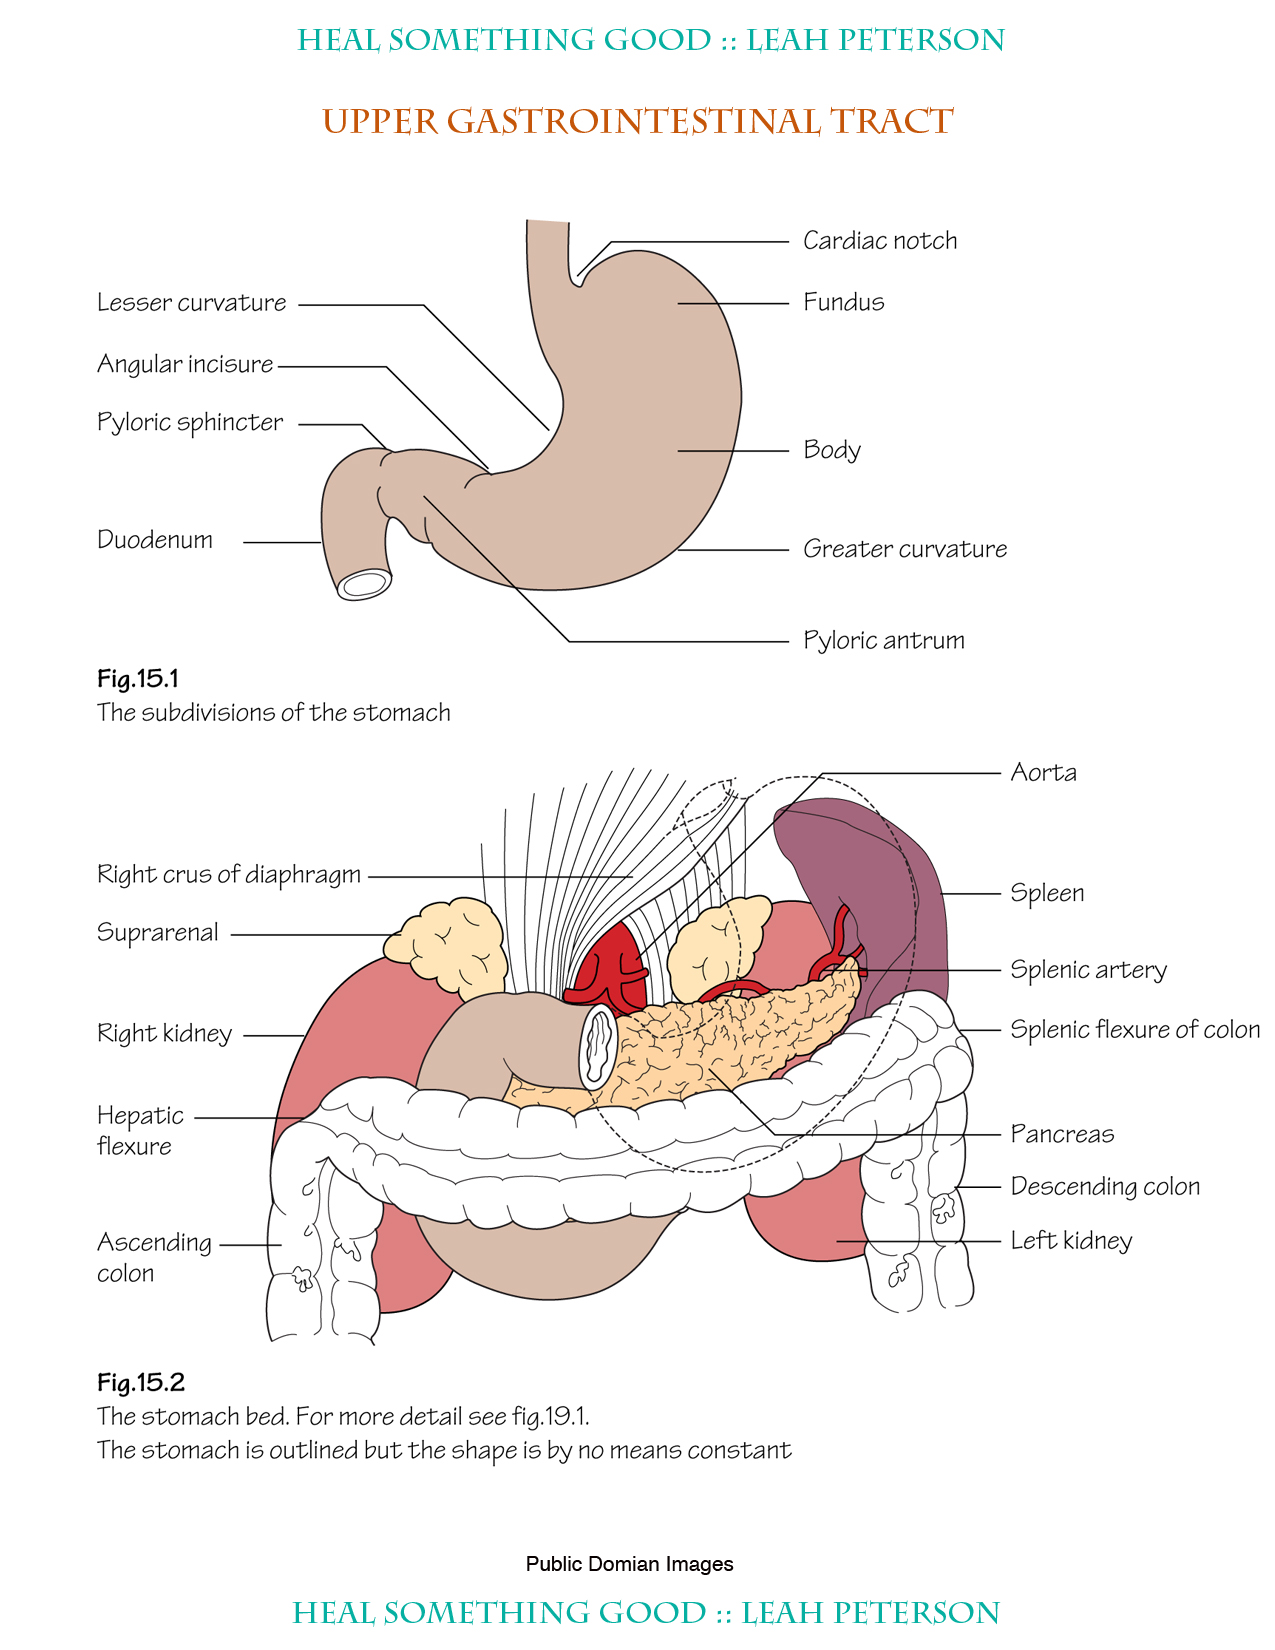 Chart Upper Gastrointestinal Tract Heal Something Good